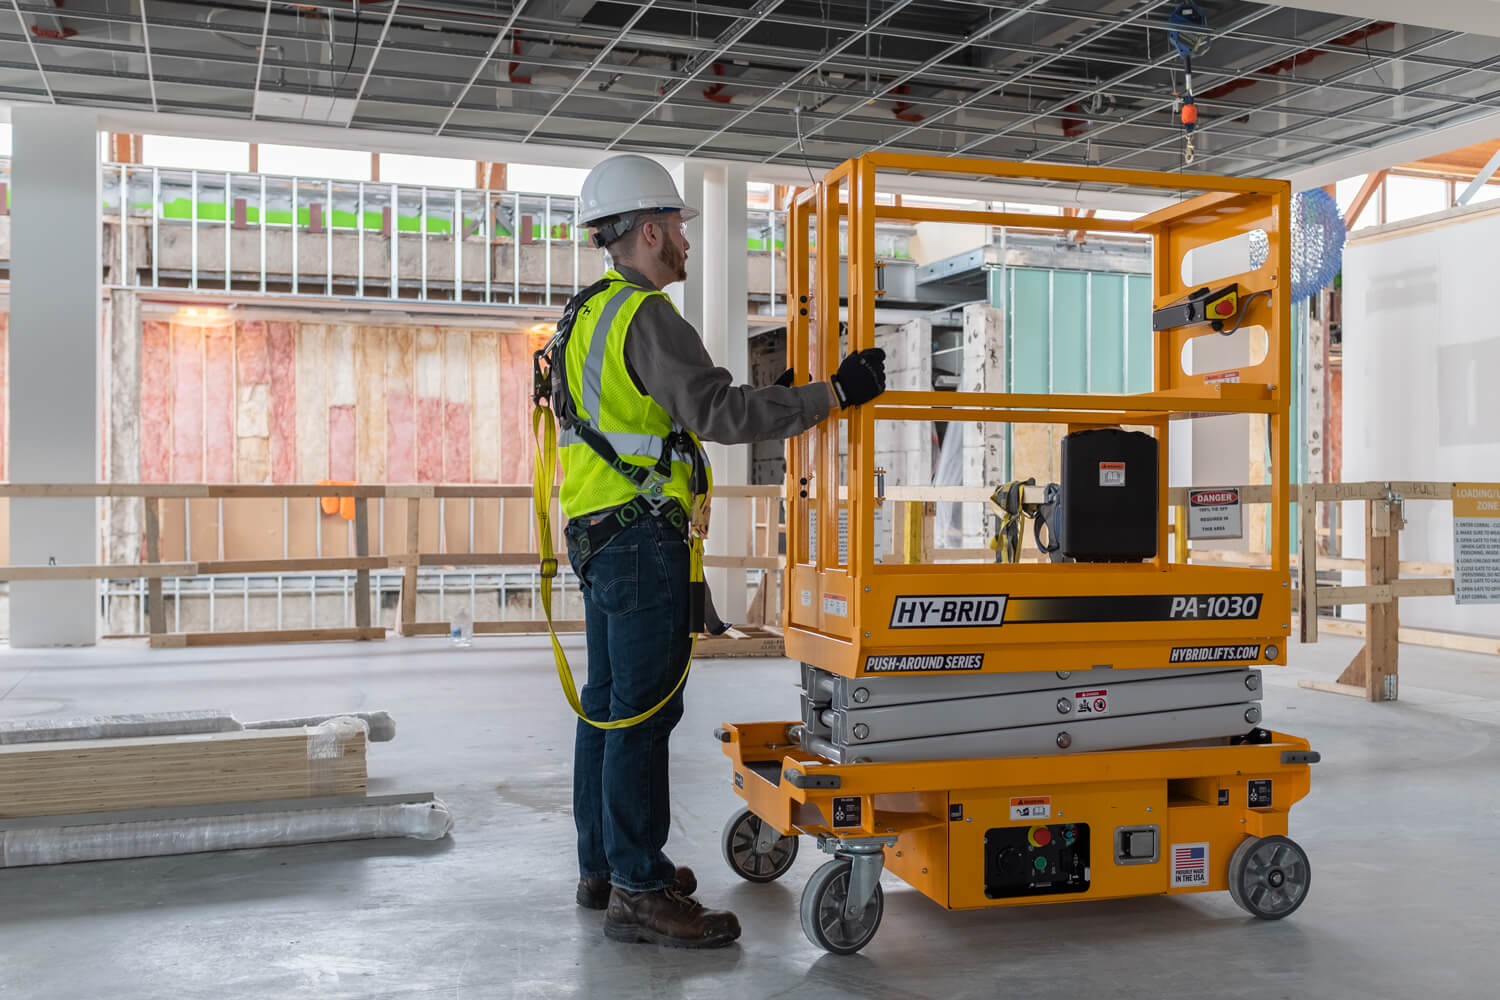 Hy-Brid PA-1030 Push-Around Mobile Elevating Work Platform